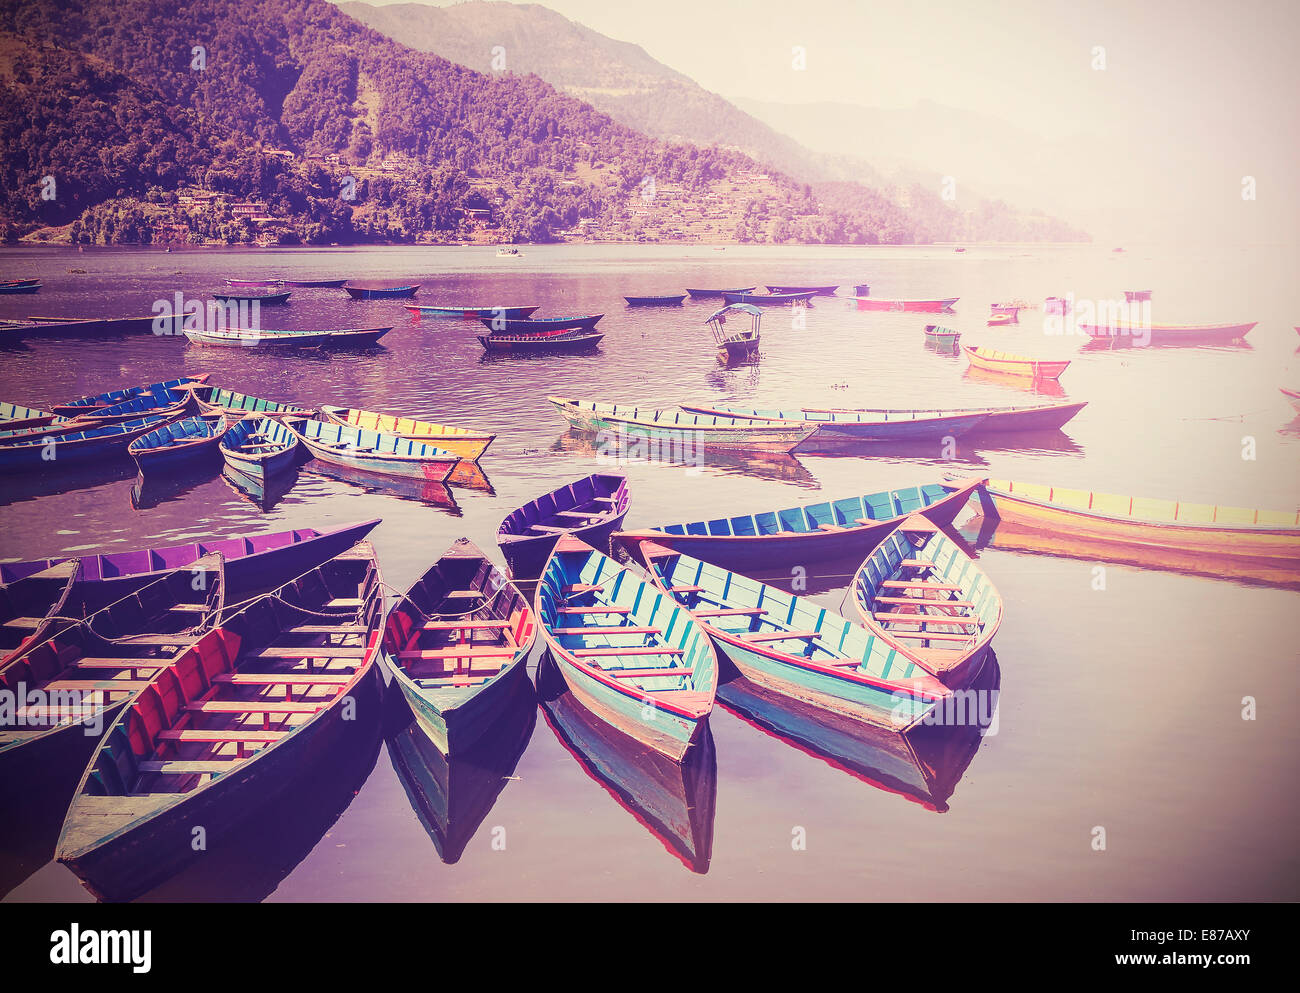 Vintage picture of small boats on lake with retro filter. - Stock Image